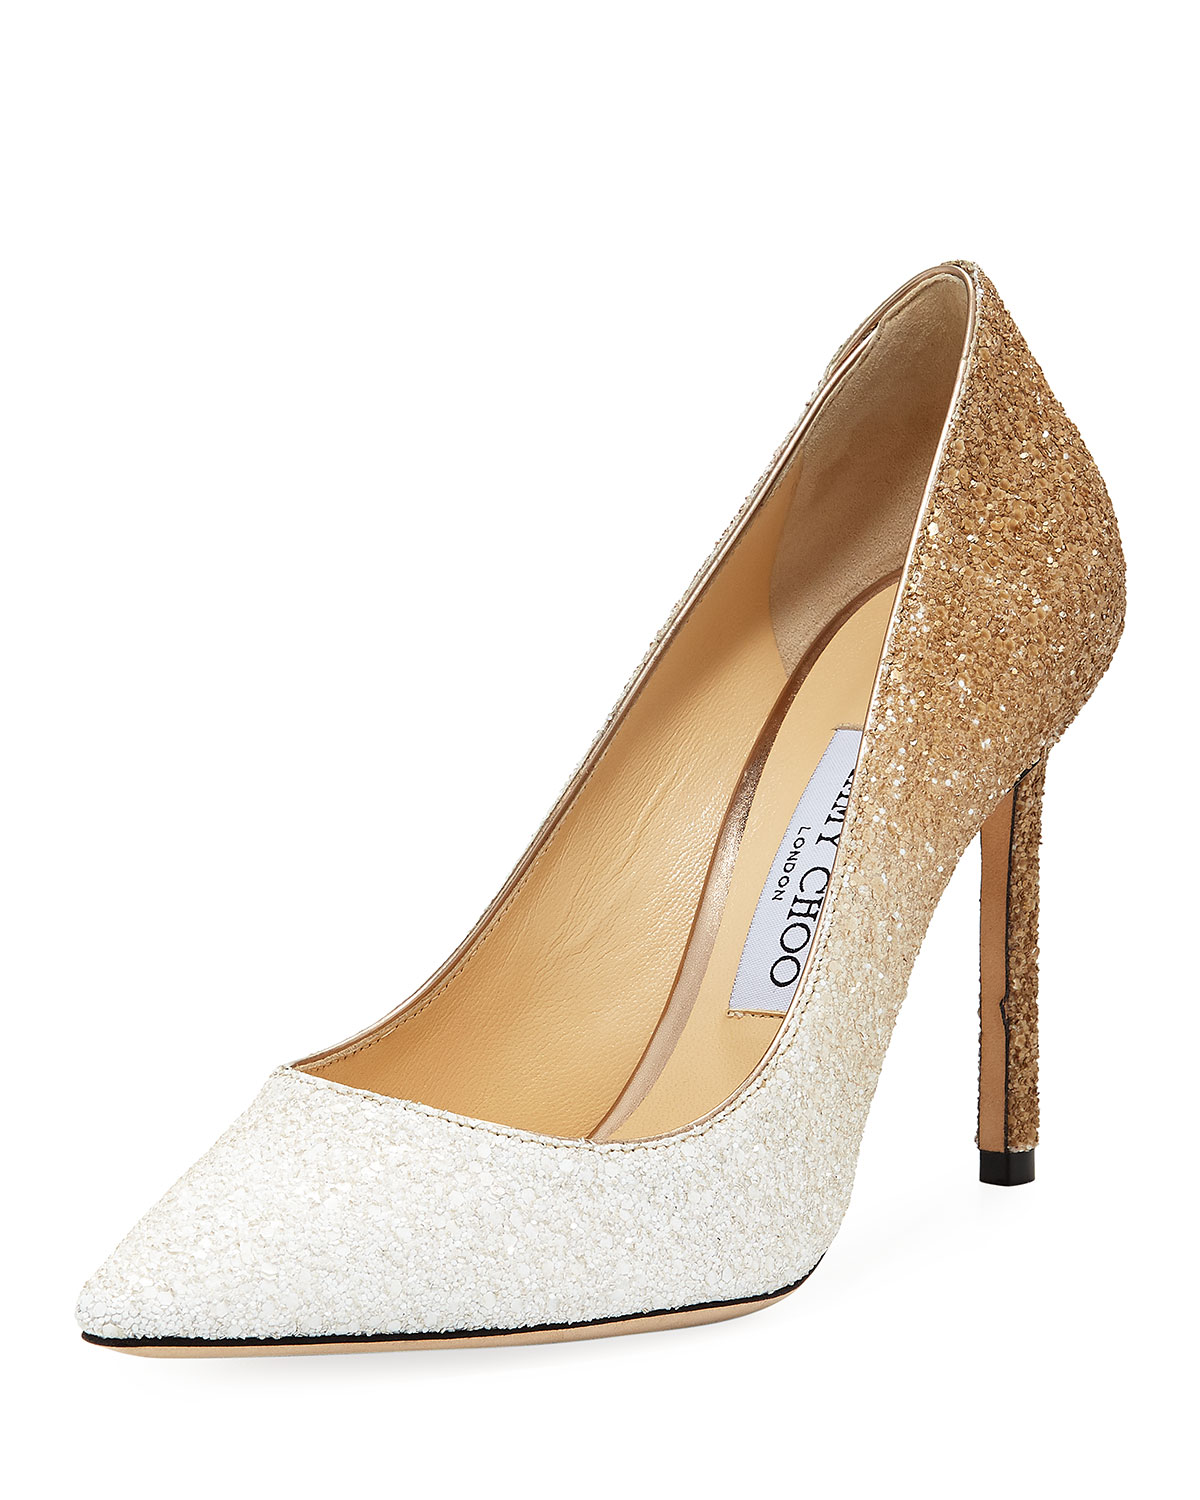 a002dfdc2855 Jimmy Choo Romy 100mm Ombre Glitter Pumps